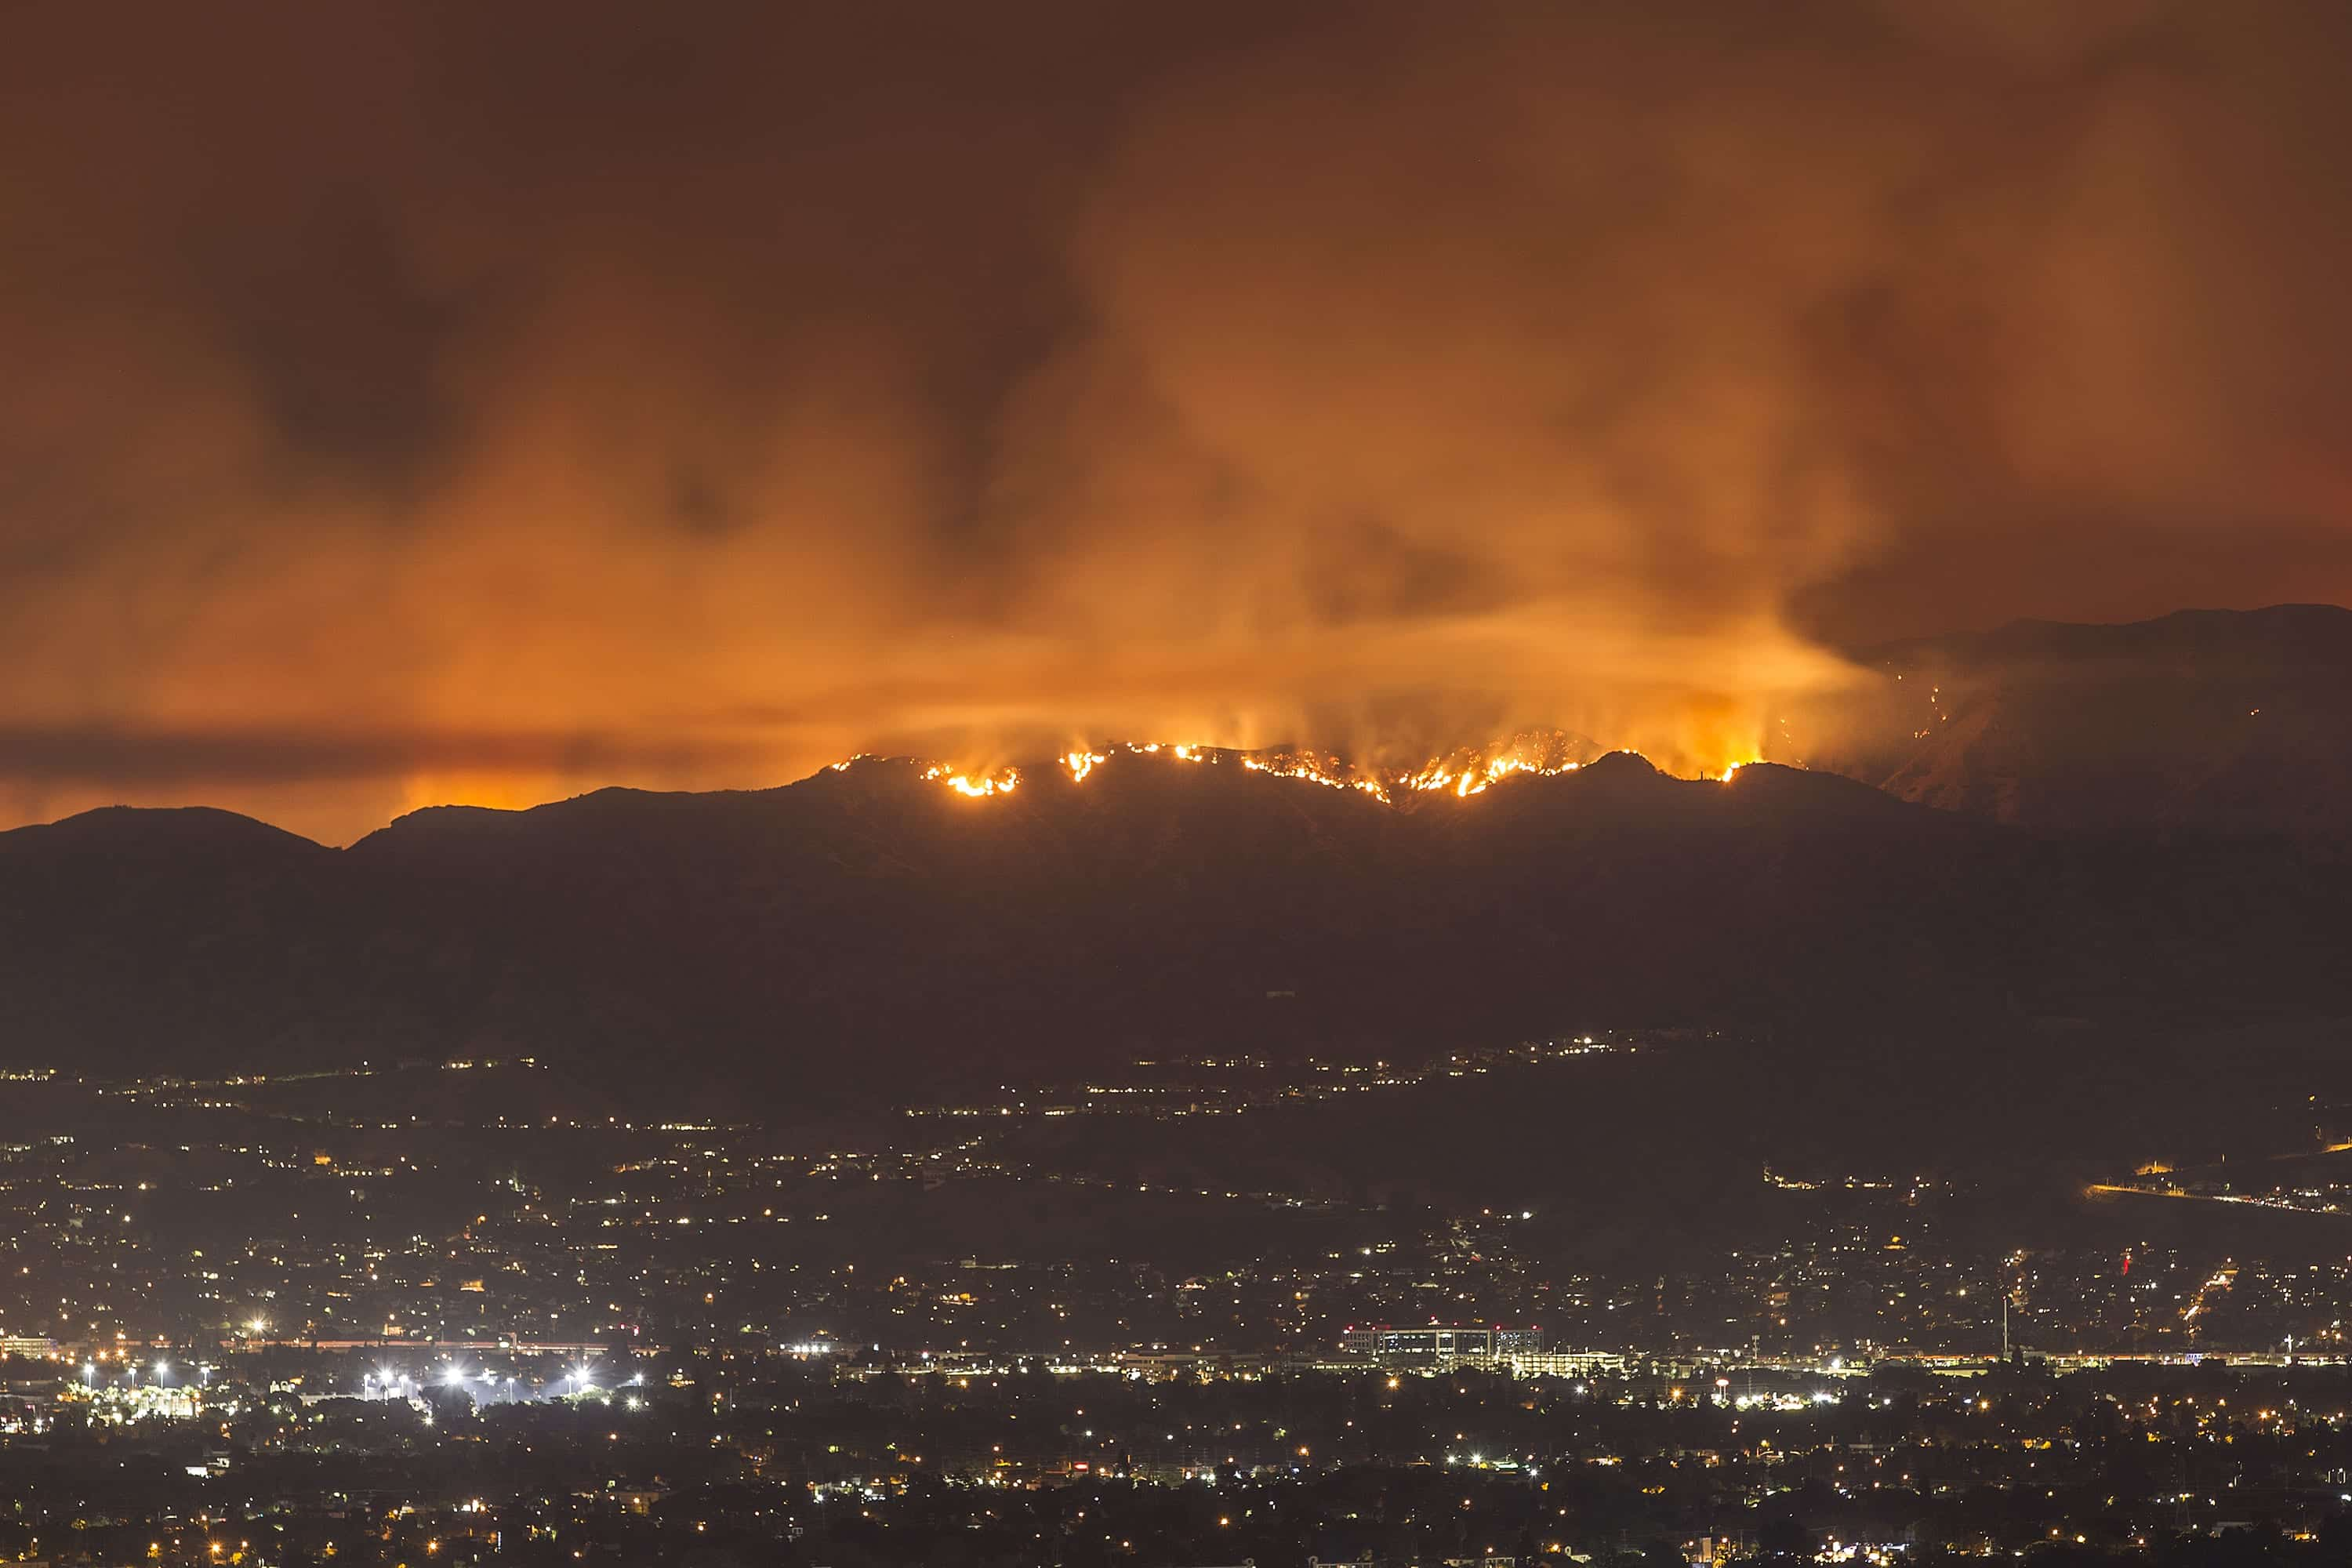 A night scene of the La Tuna fire burning in the mountains around Los Angeles. In the foreground, the city's lights shine.